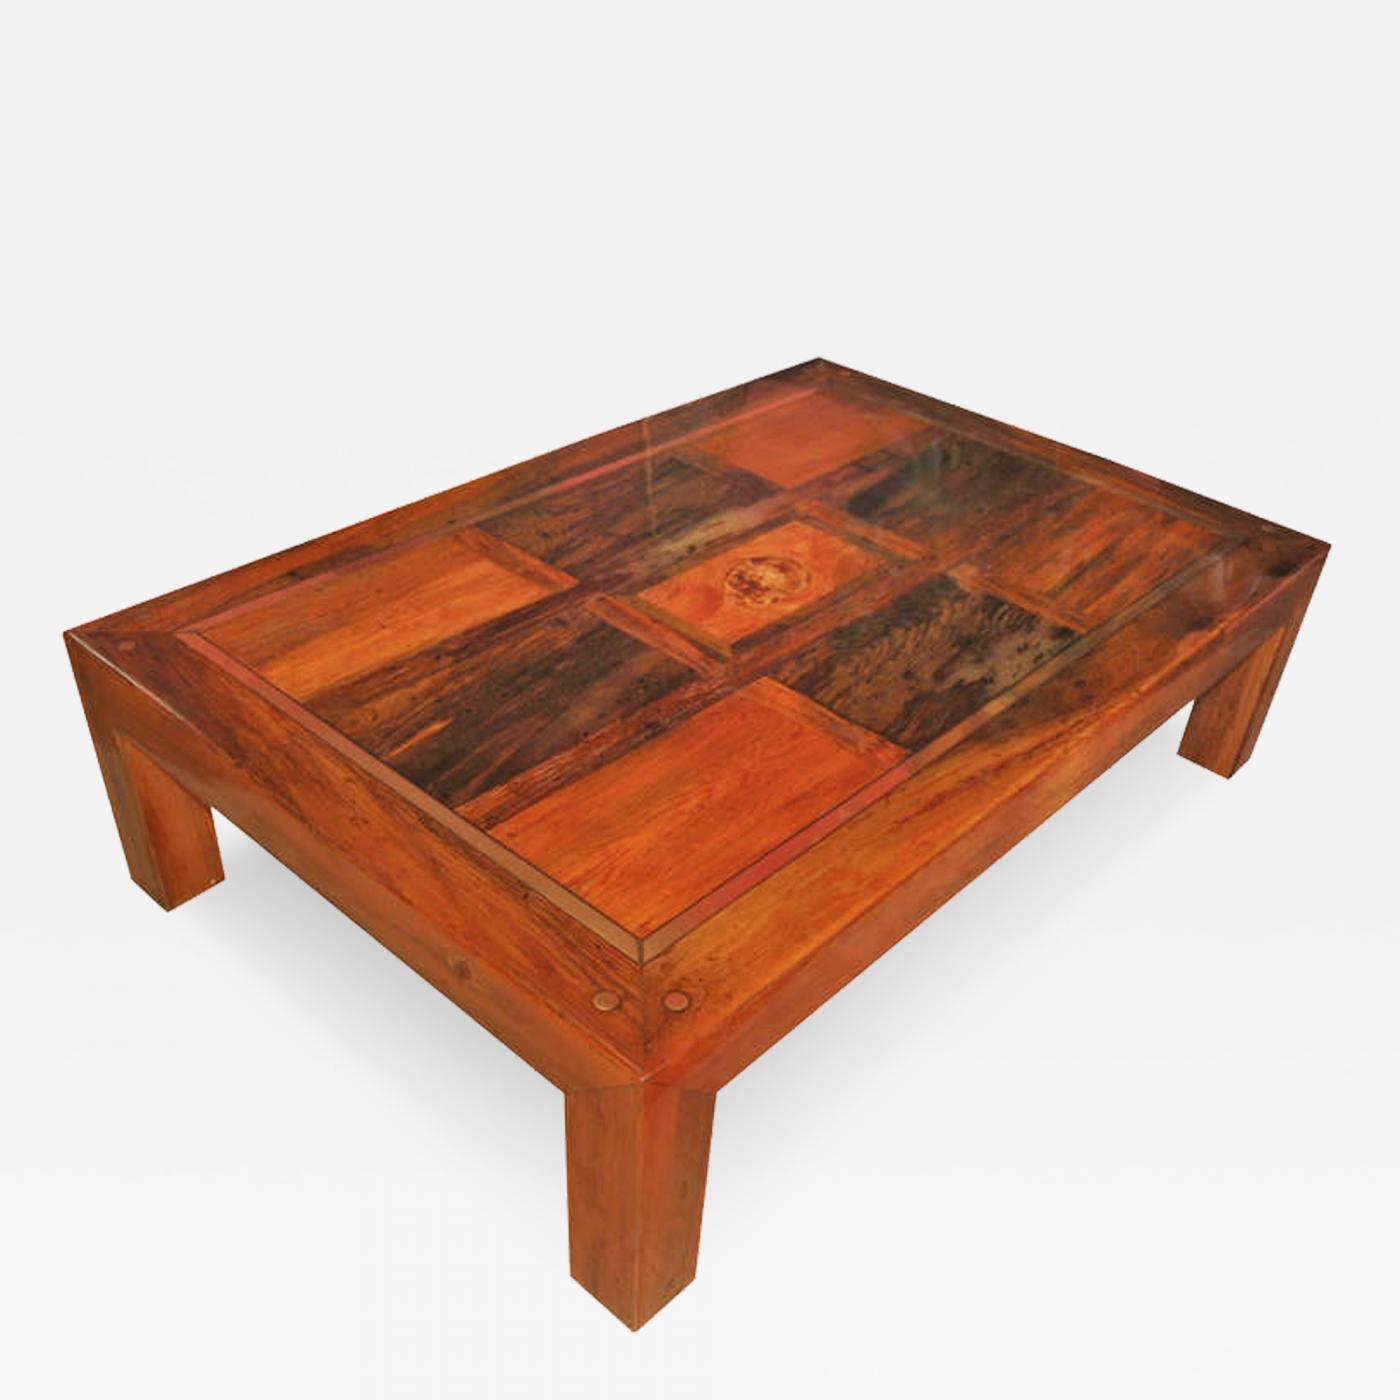 Wood Coffee Table With Brass Inset Accents